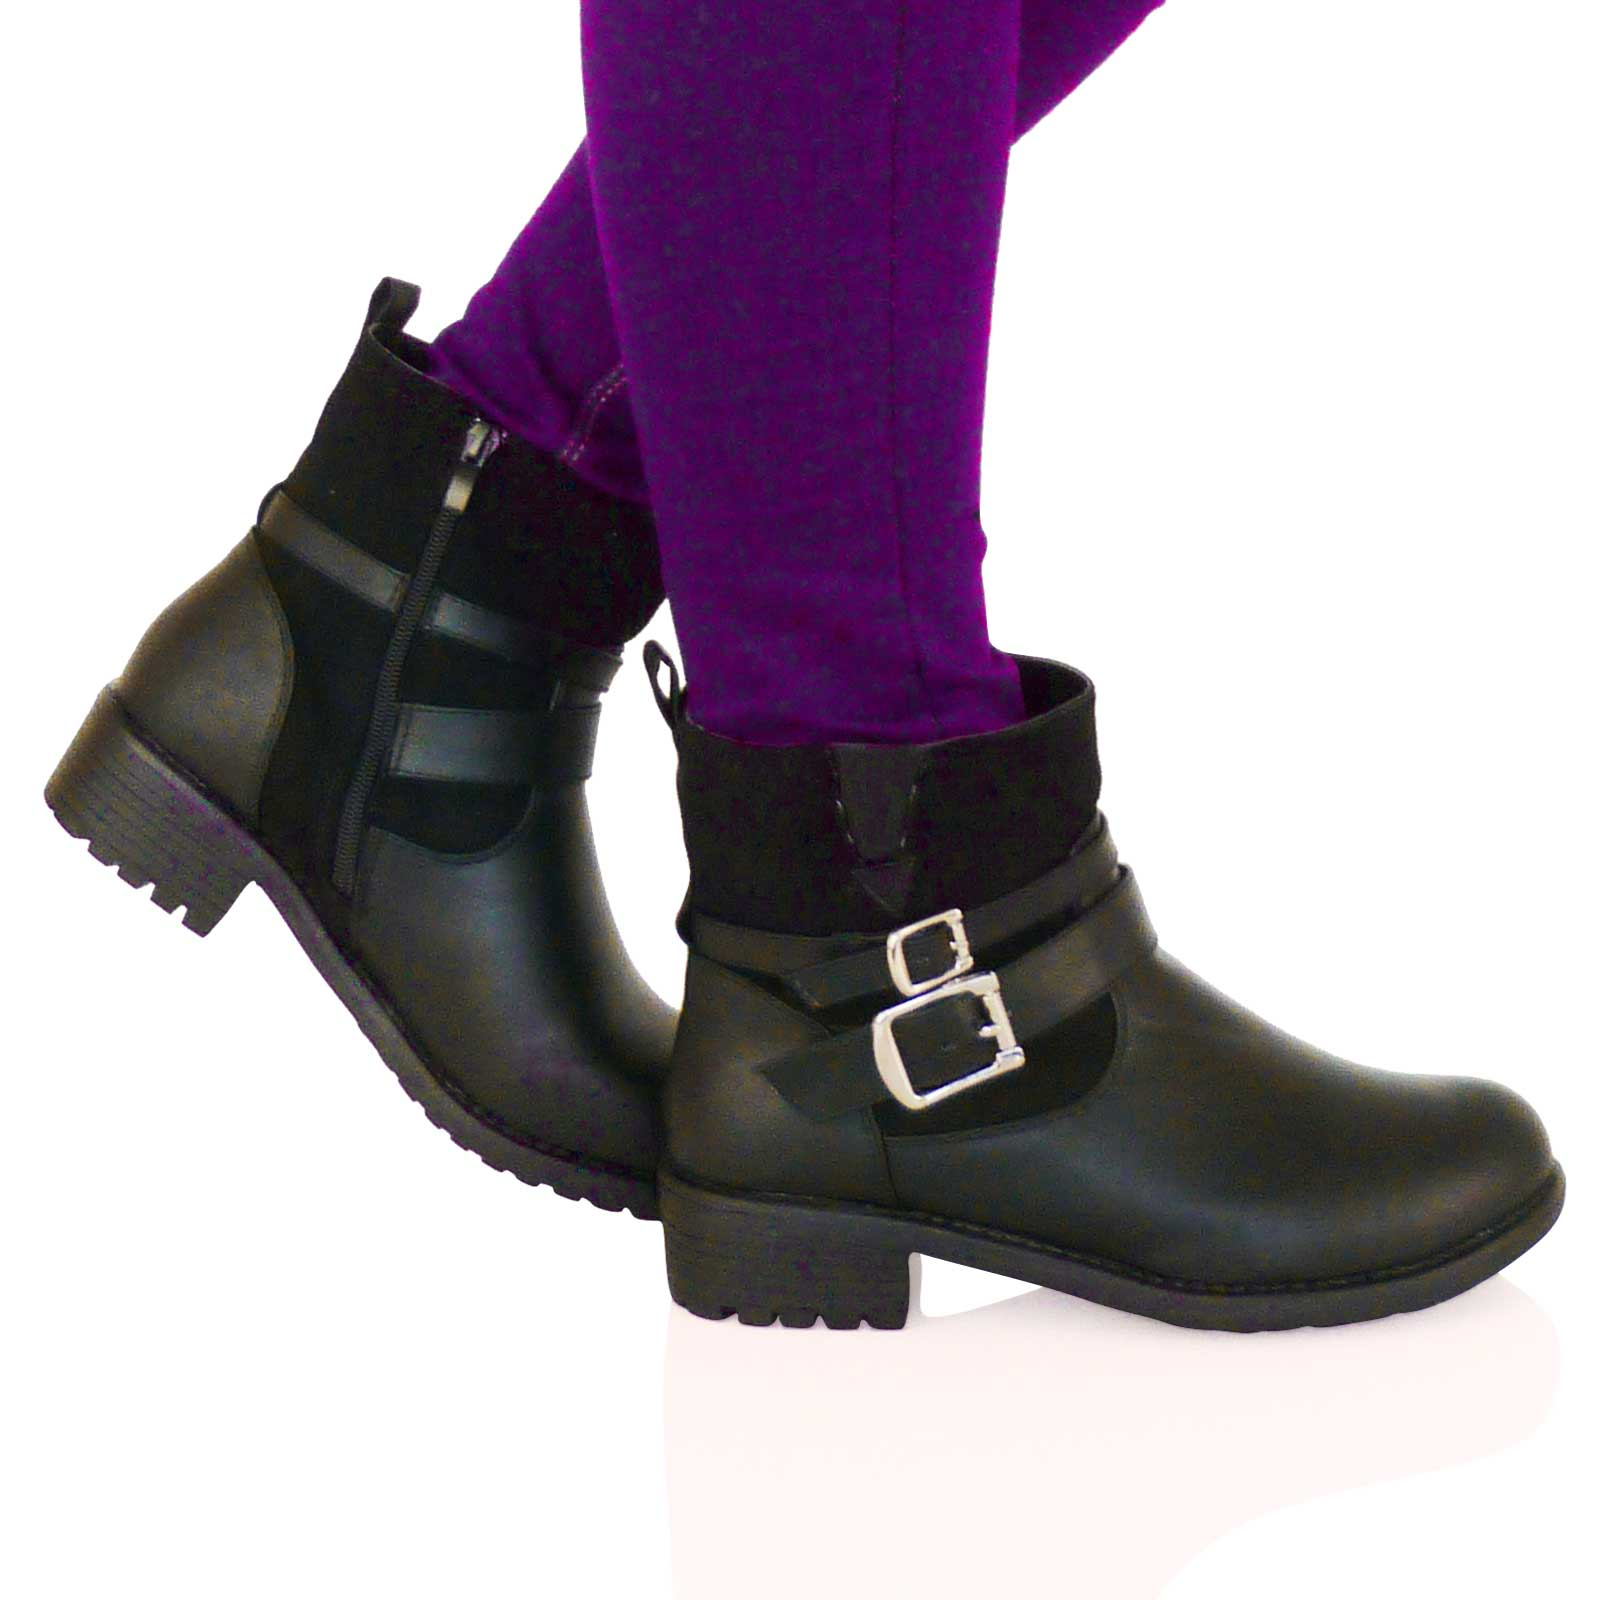 Brilliant Great Pair Of Low Cut Rain Boots! - Review Of Khombu 3-Eye Winter Boots - Waterproof Plush Faux ...